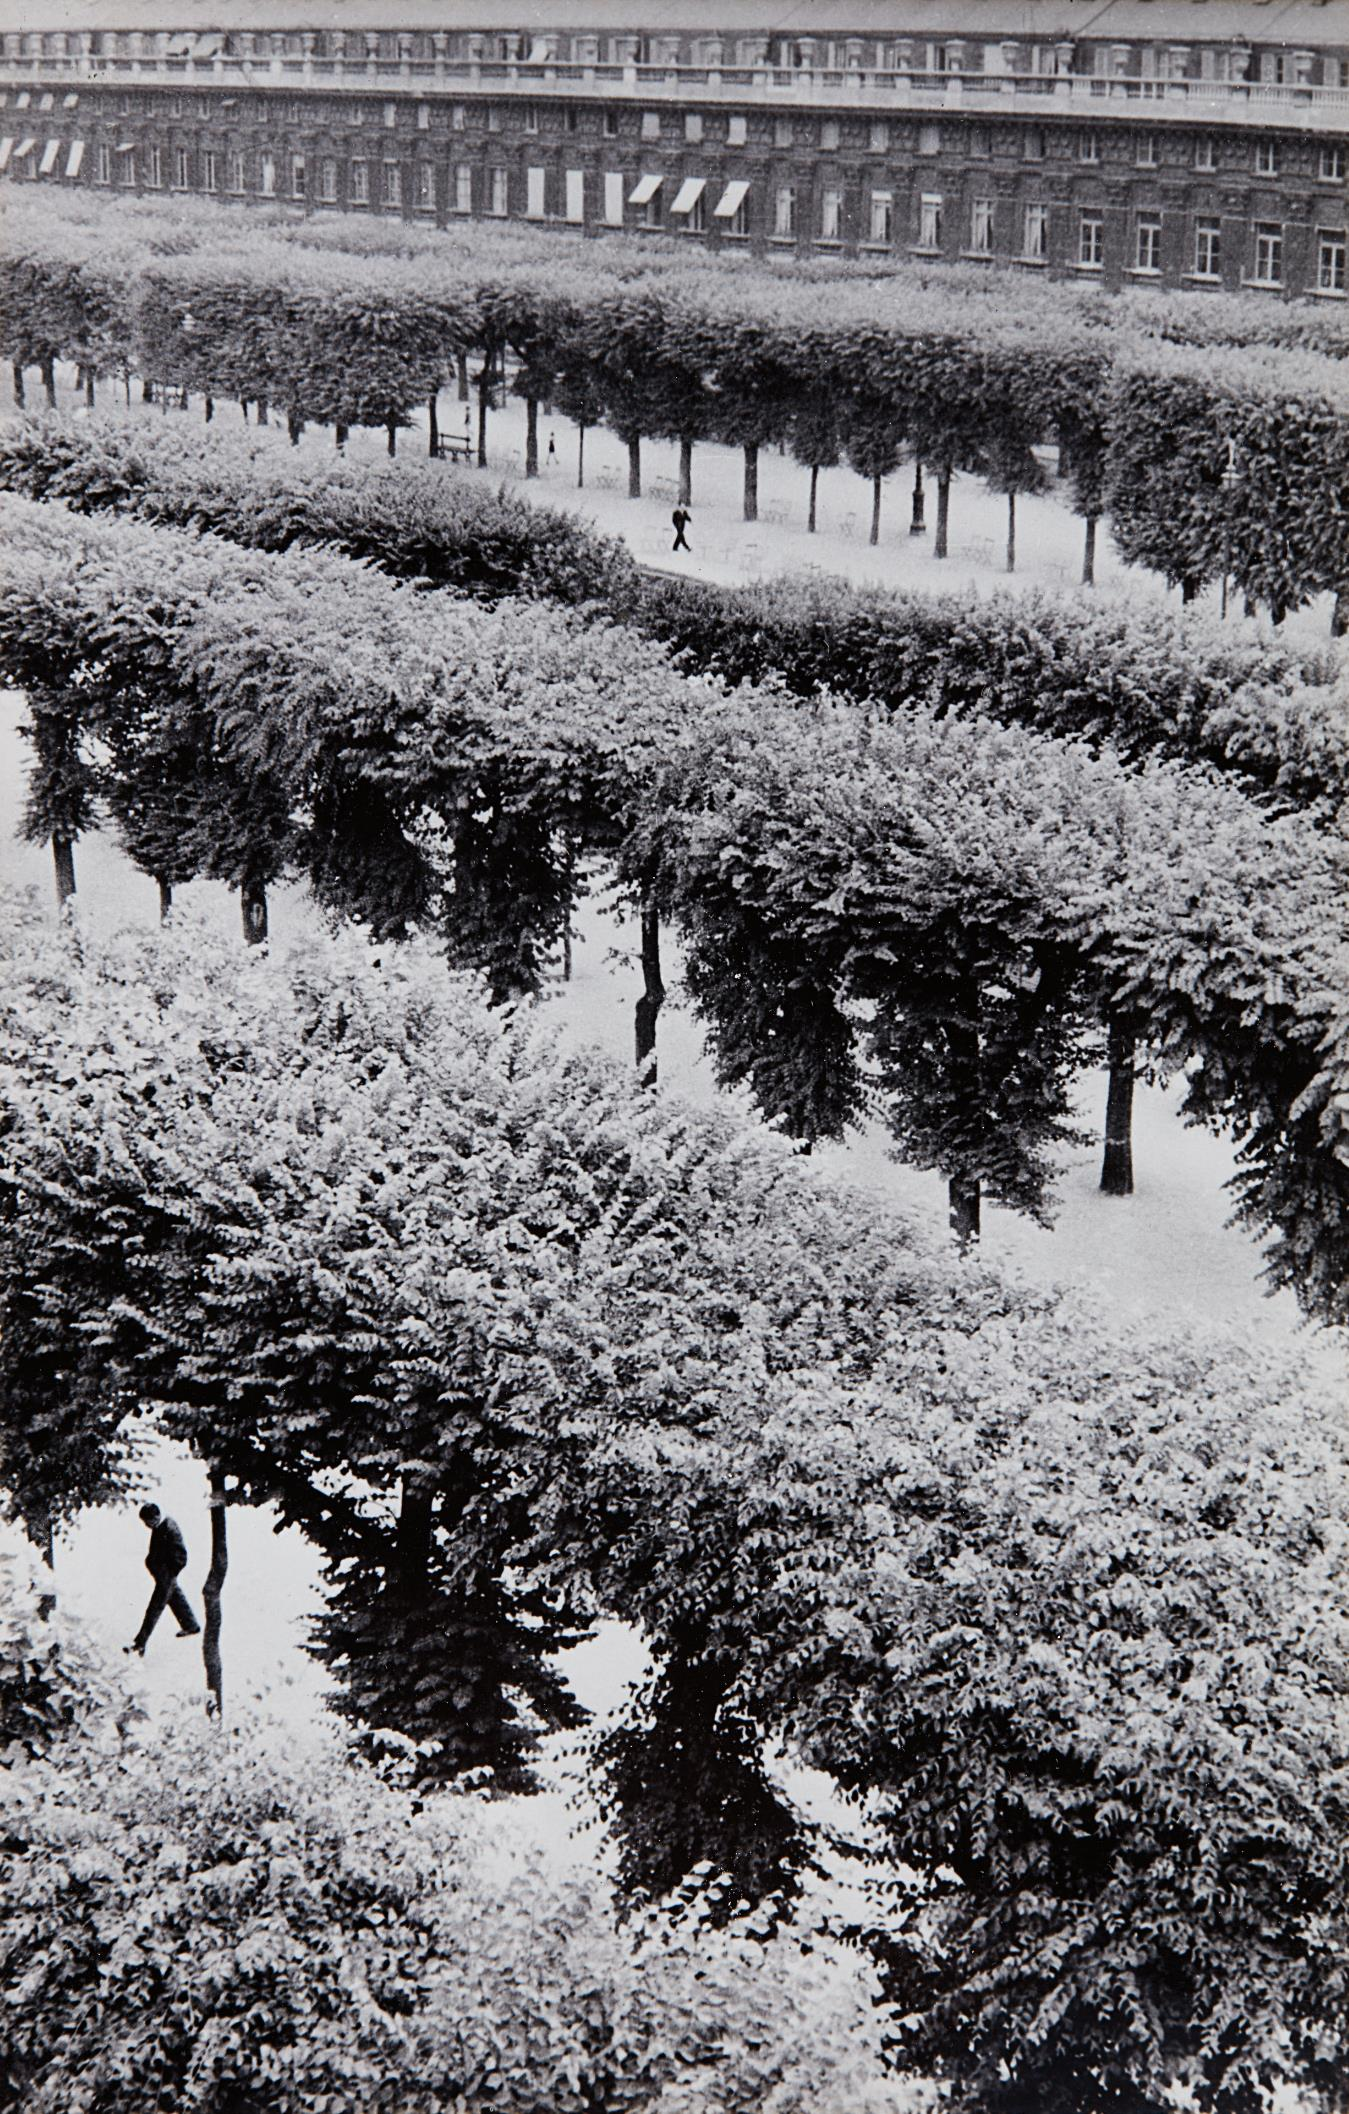 Henri Cartier-Bresson-Gardens Of The Palais Royal, Paris, France-1961